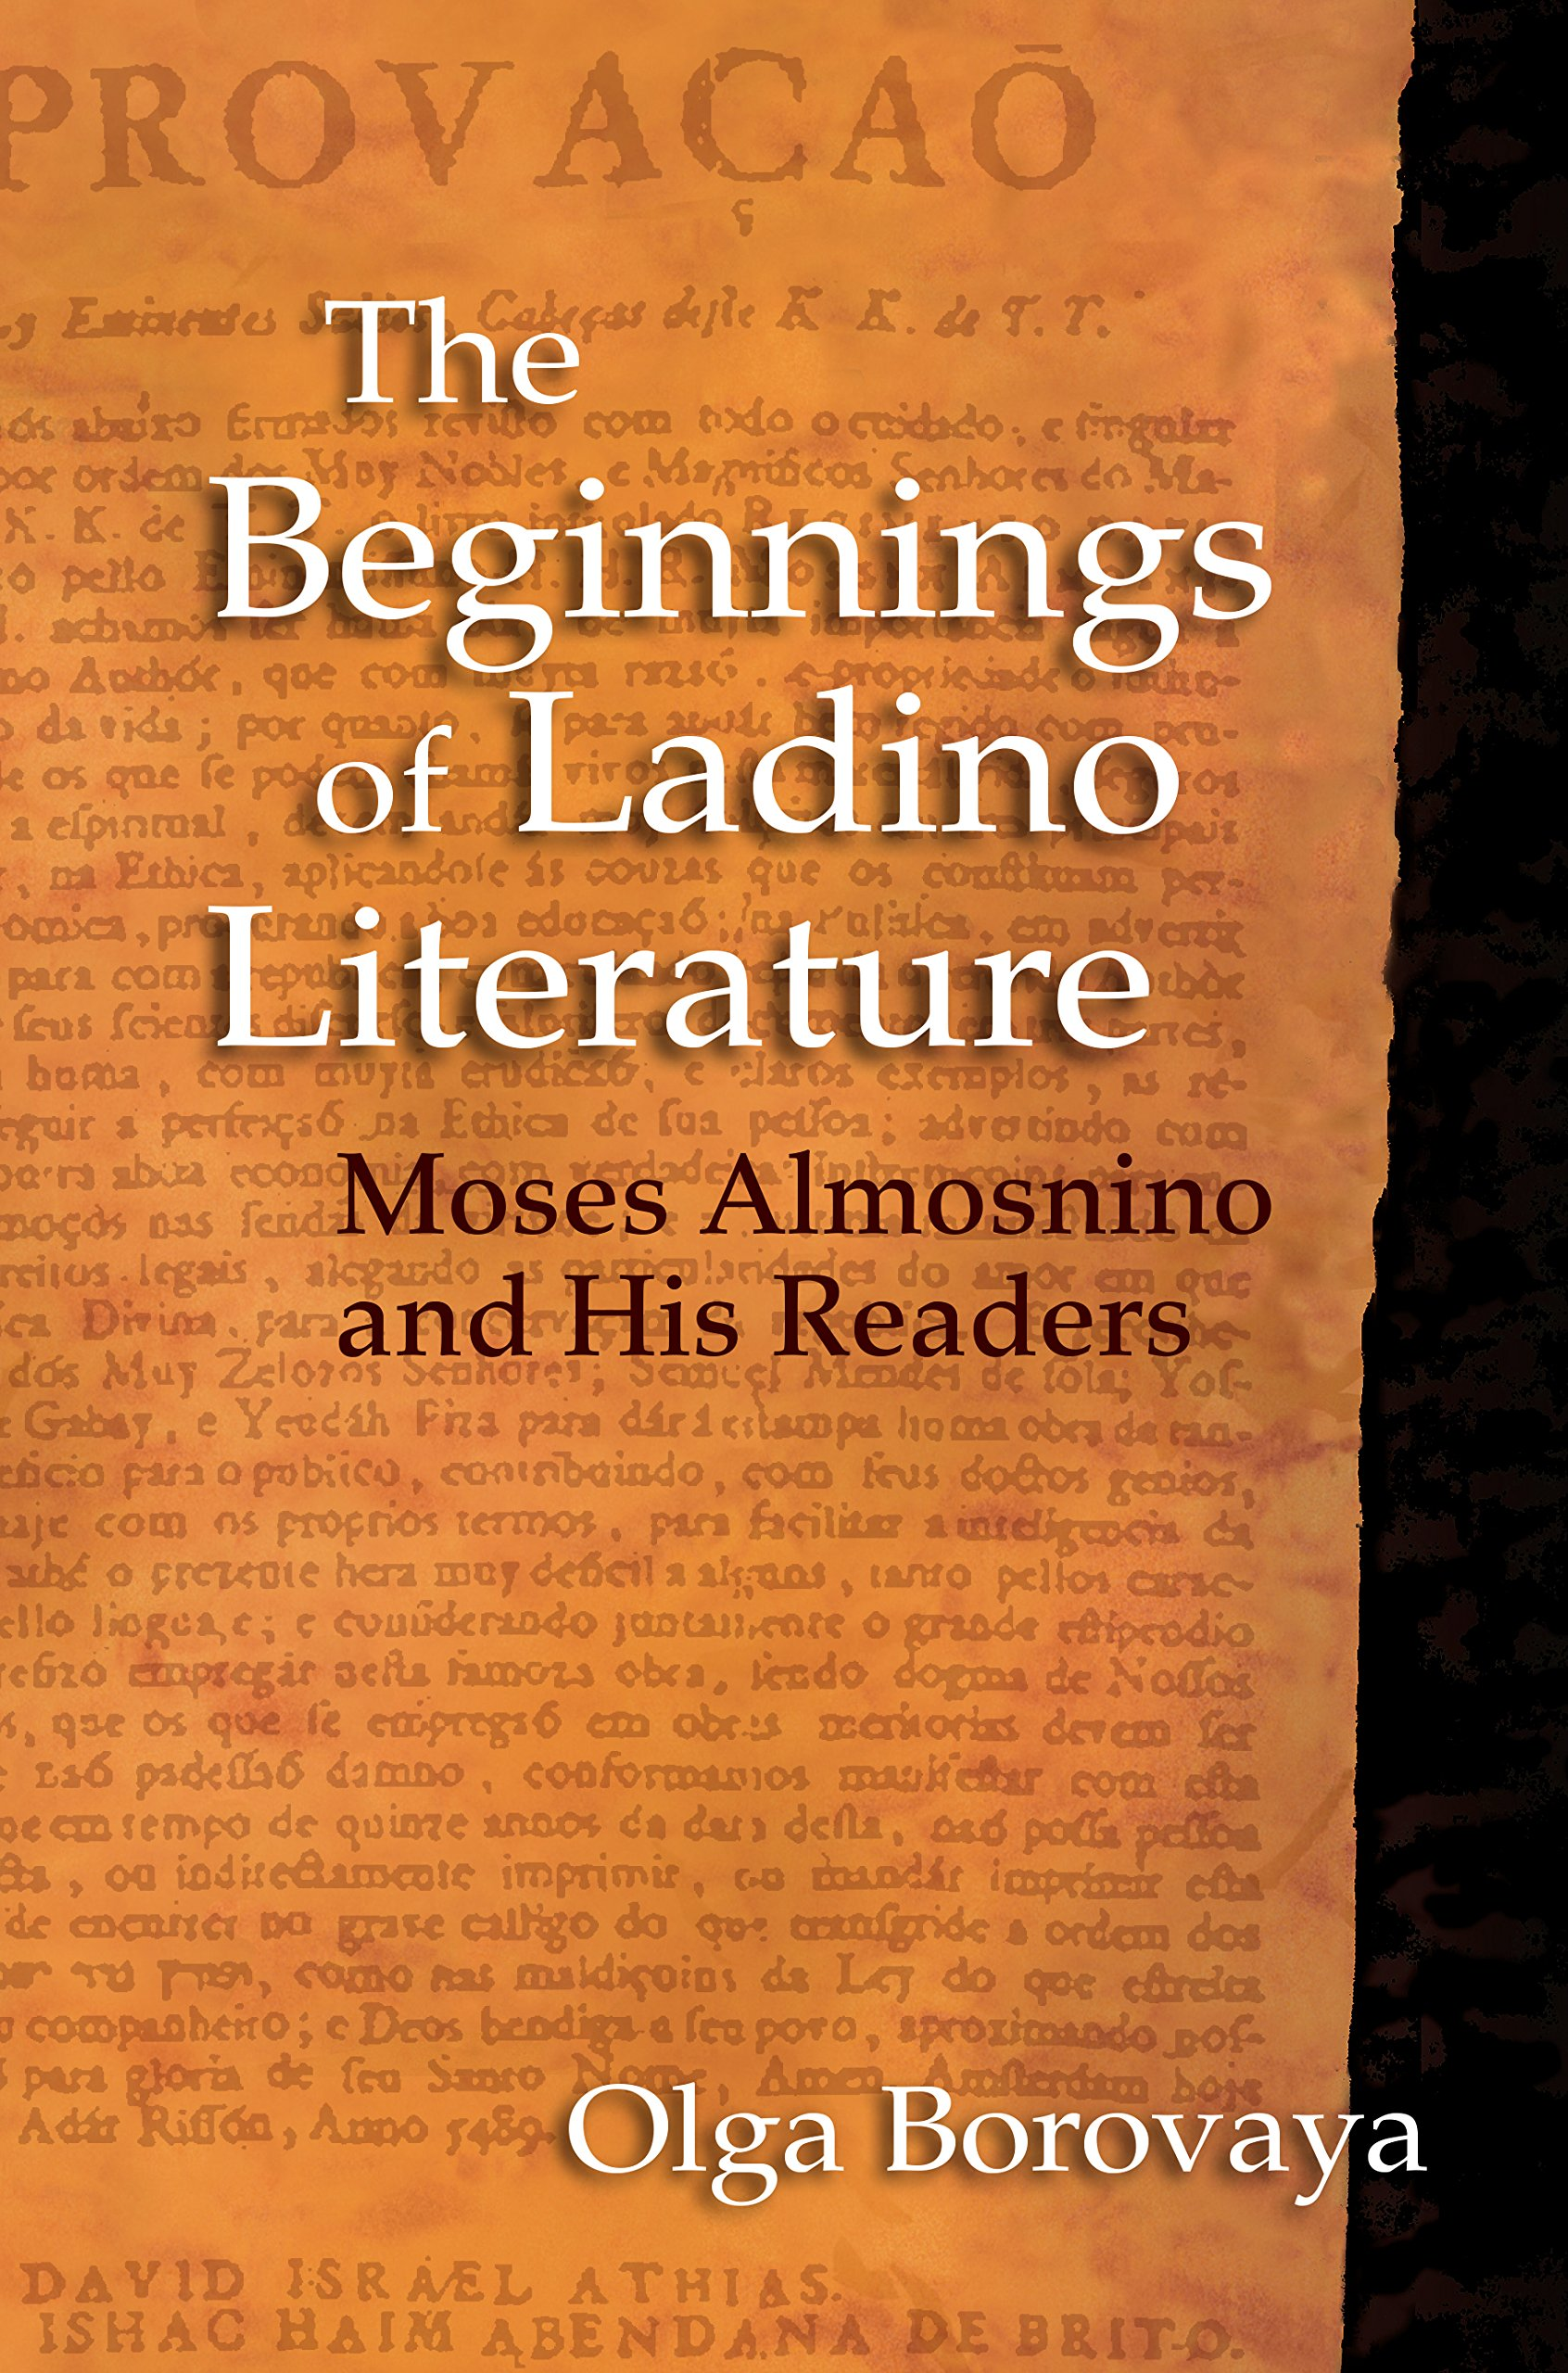 Read Online The Beginnings of Ladino Literature: Moses Almosnino and His Readers (Indiana Series in Sephardi and Mizrahi Studies) PDF